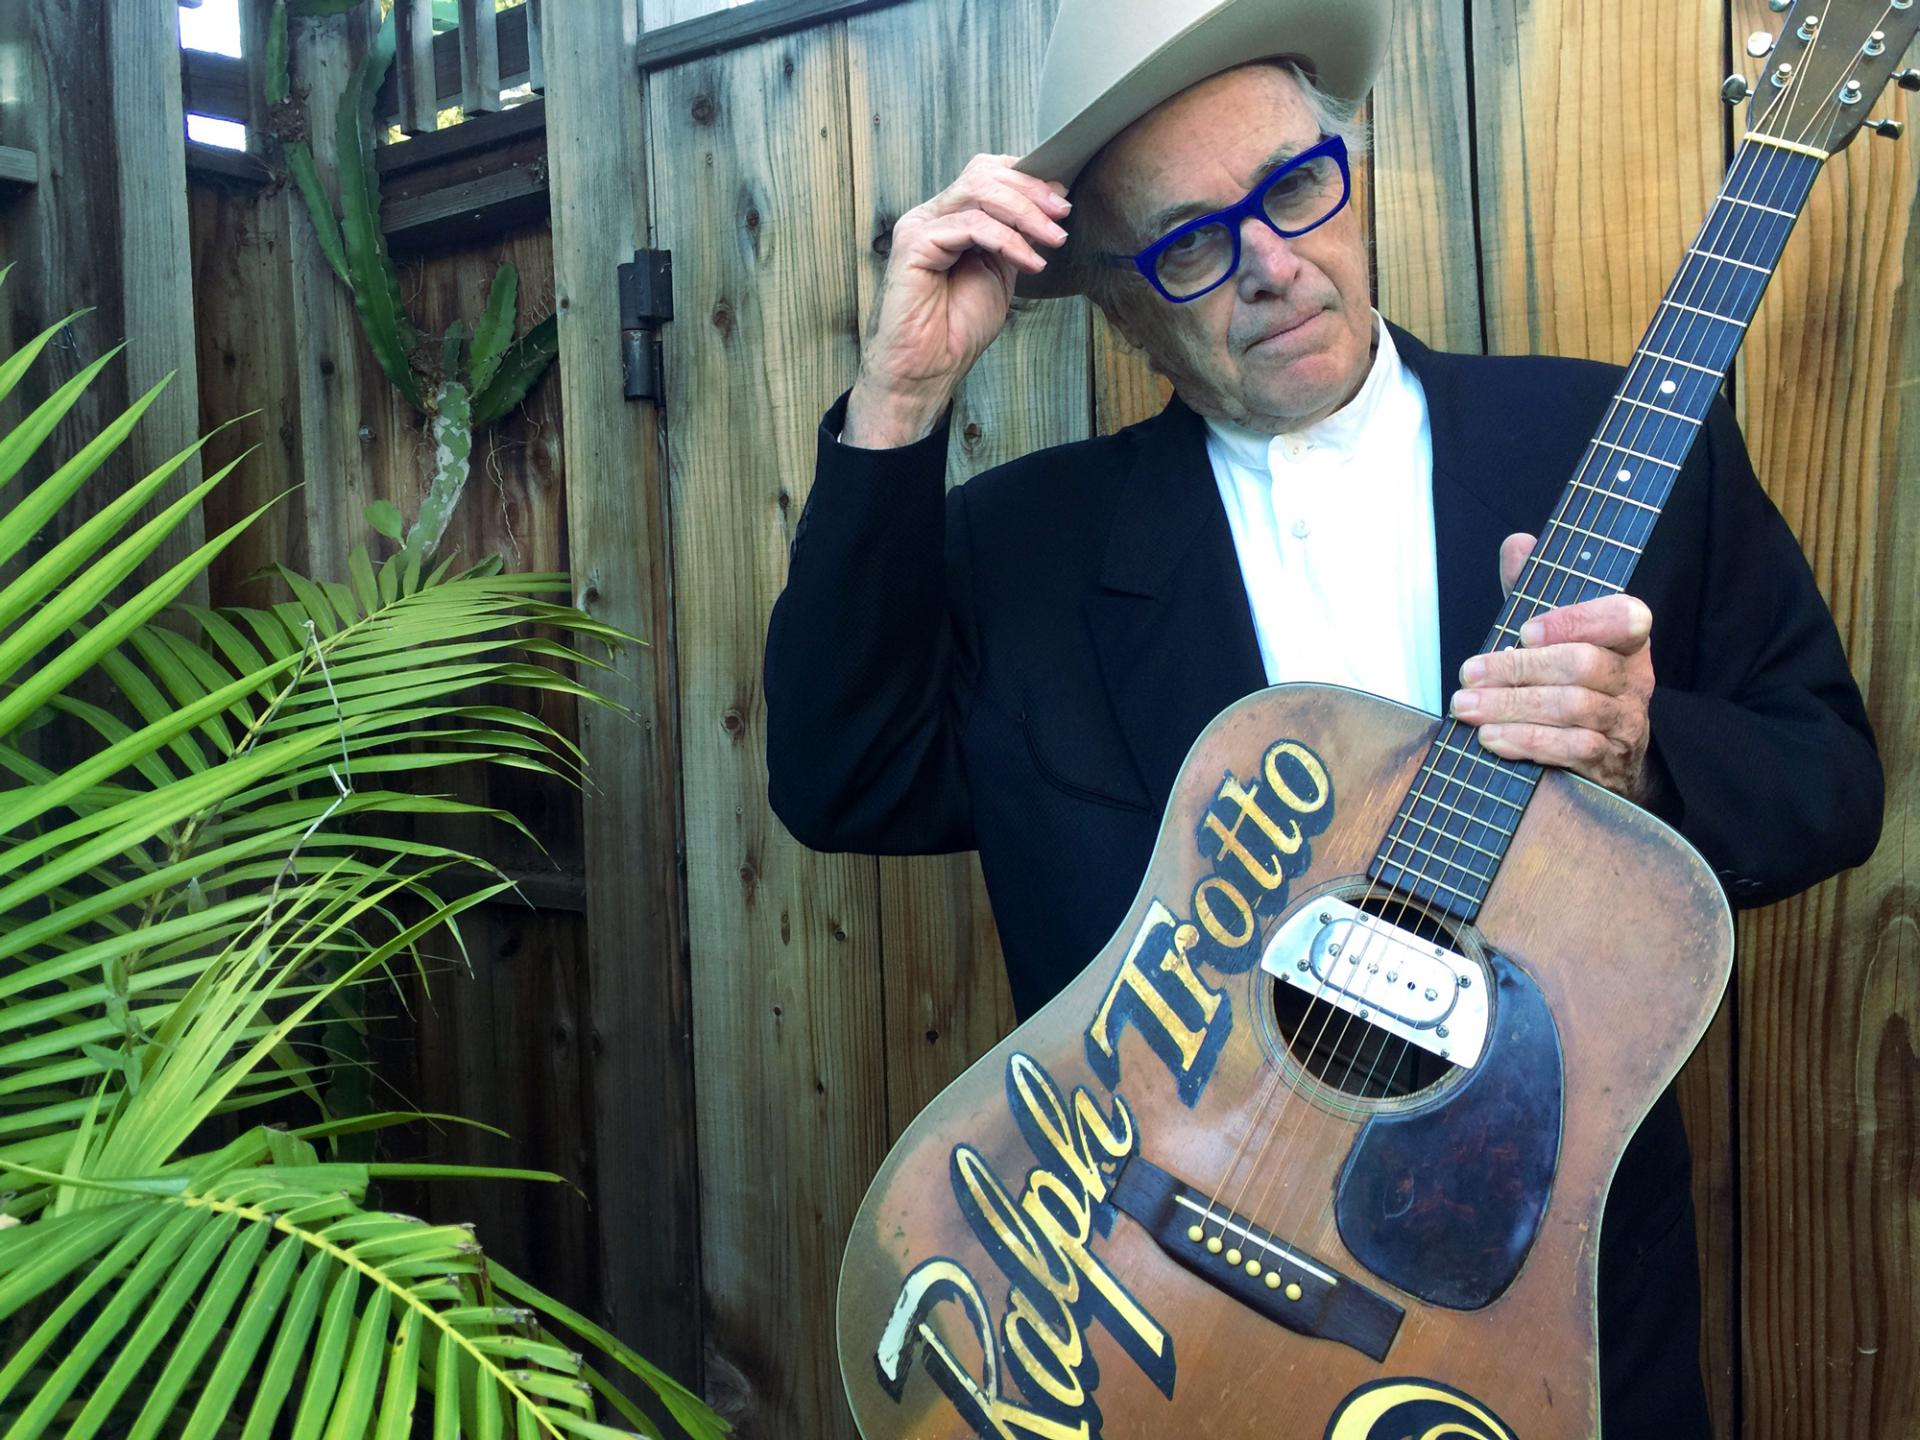 Ry Cooder, Prodigal son